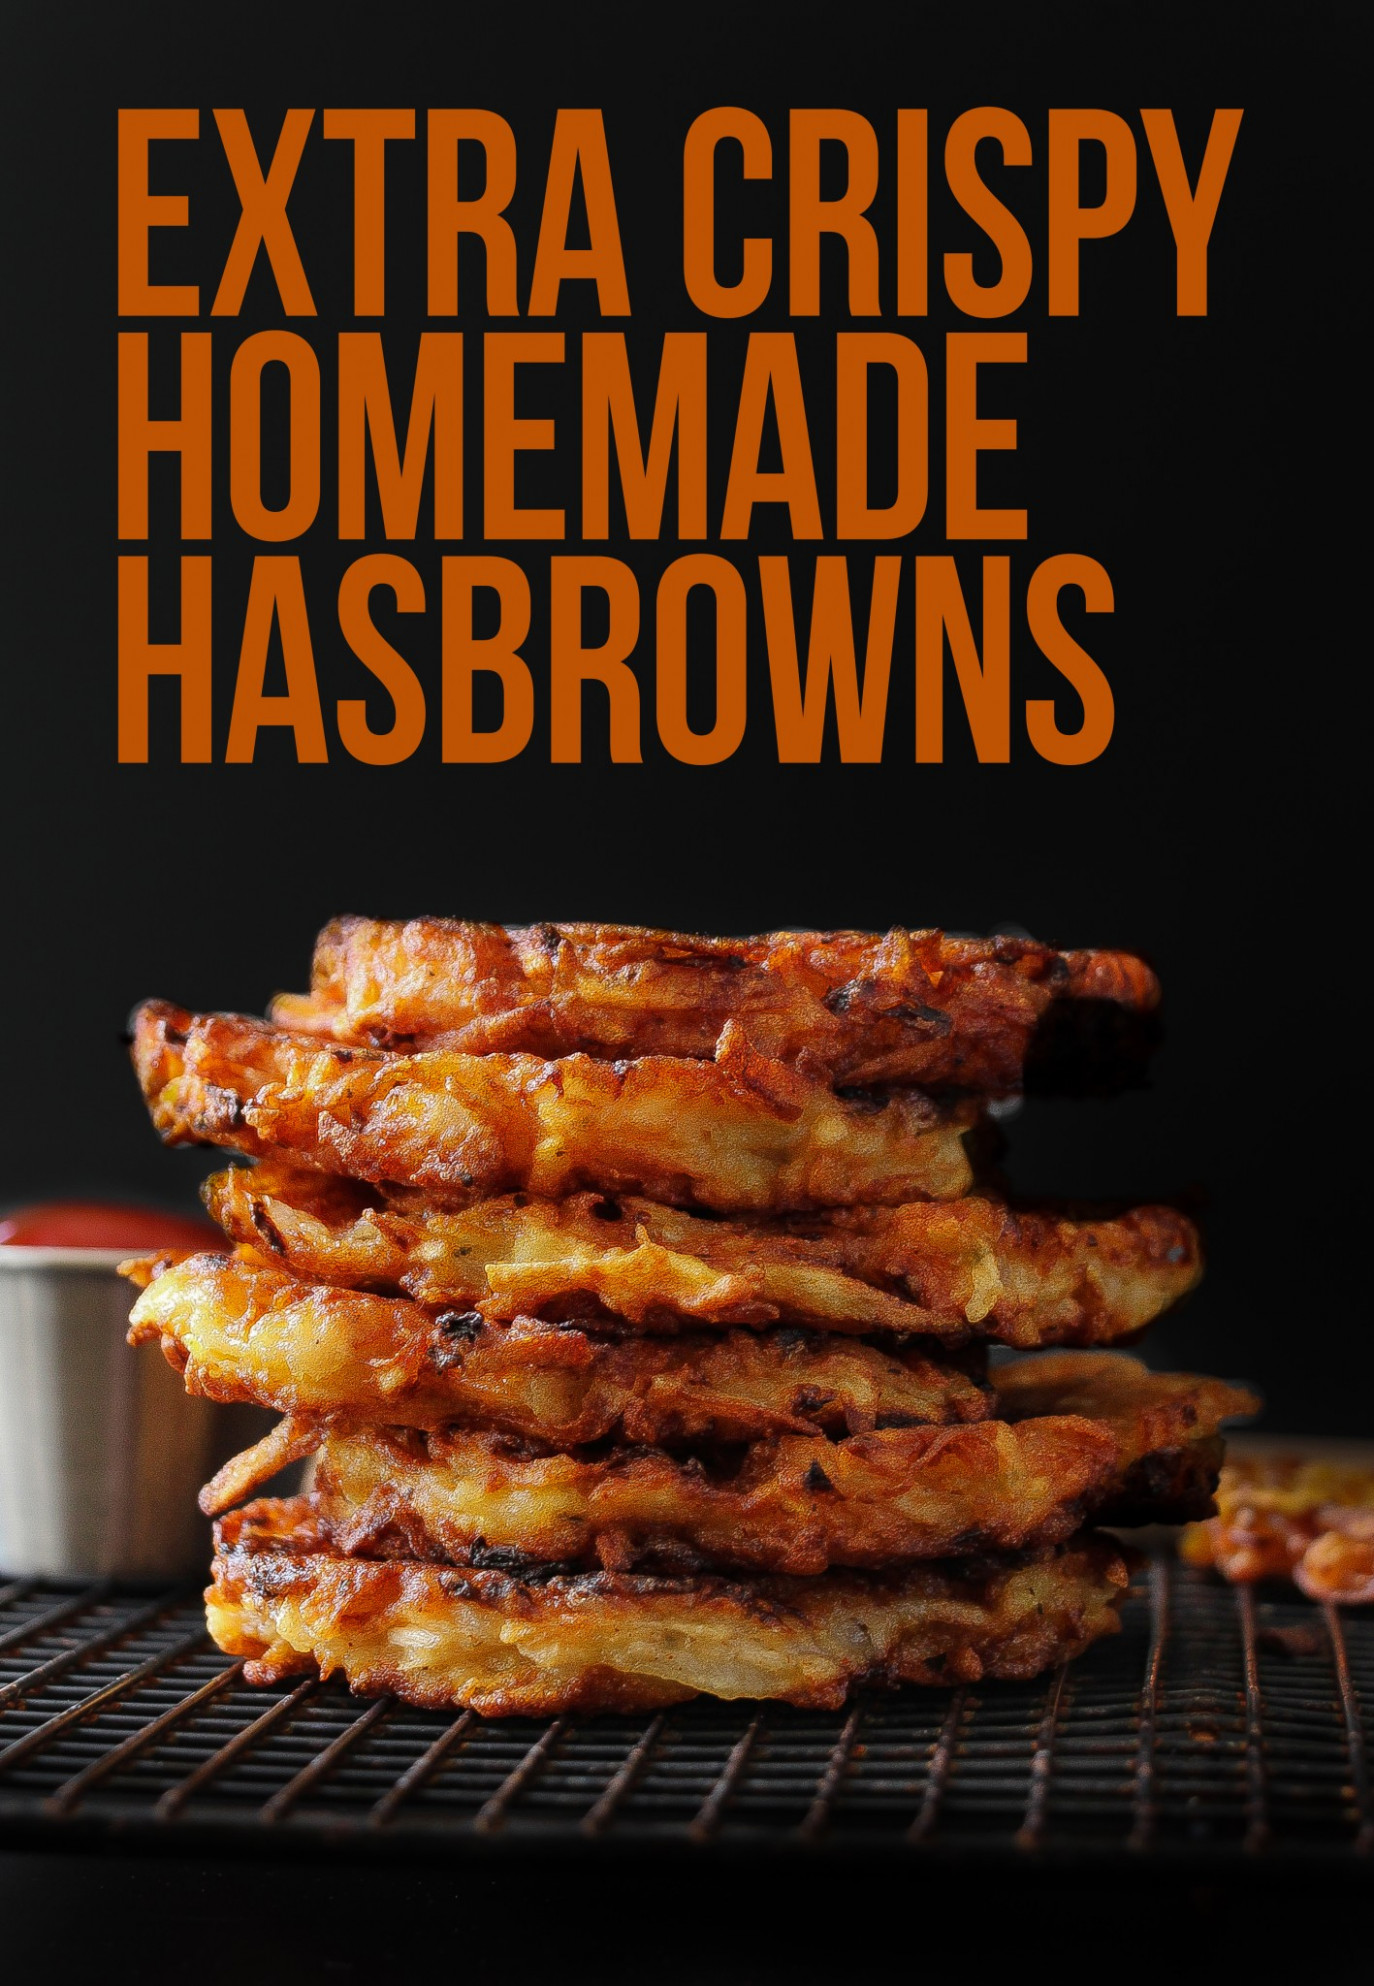 Extra Crispy Restaurant Style Hashbrown Patties - Dinner Recipes Using Frozen Hash Browns